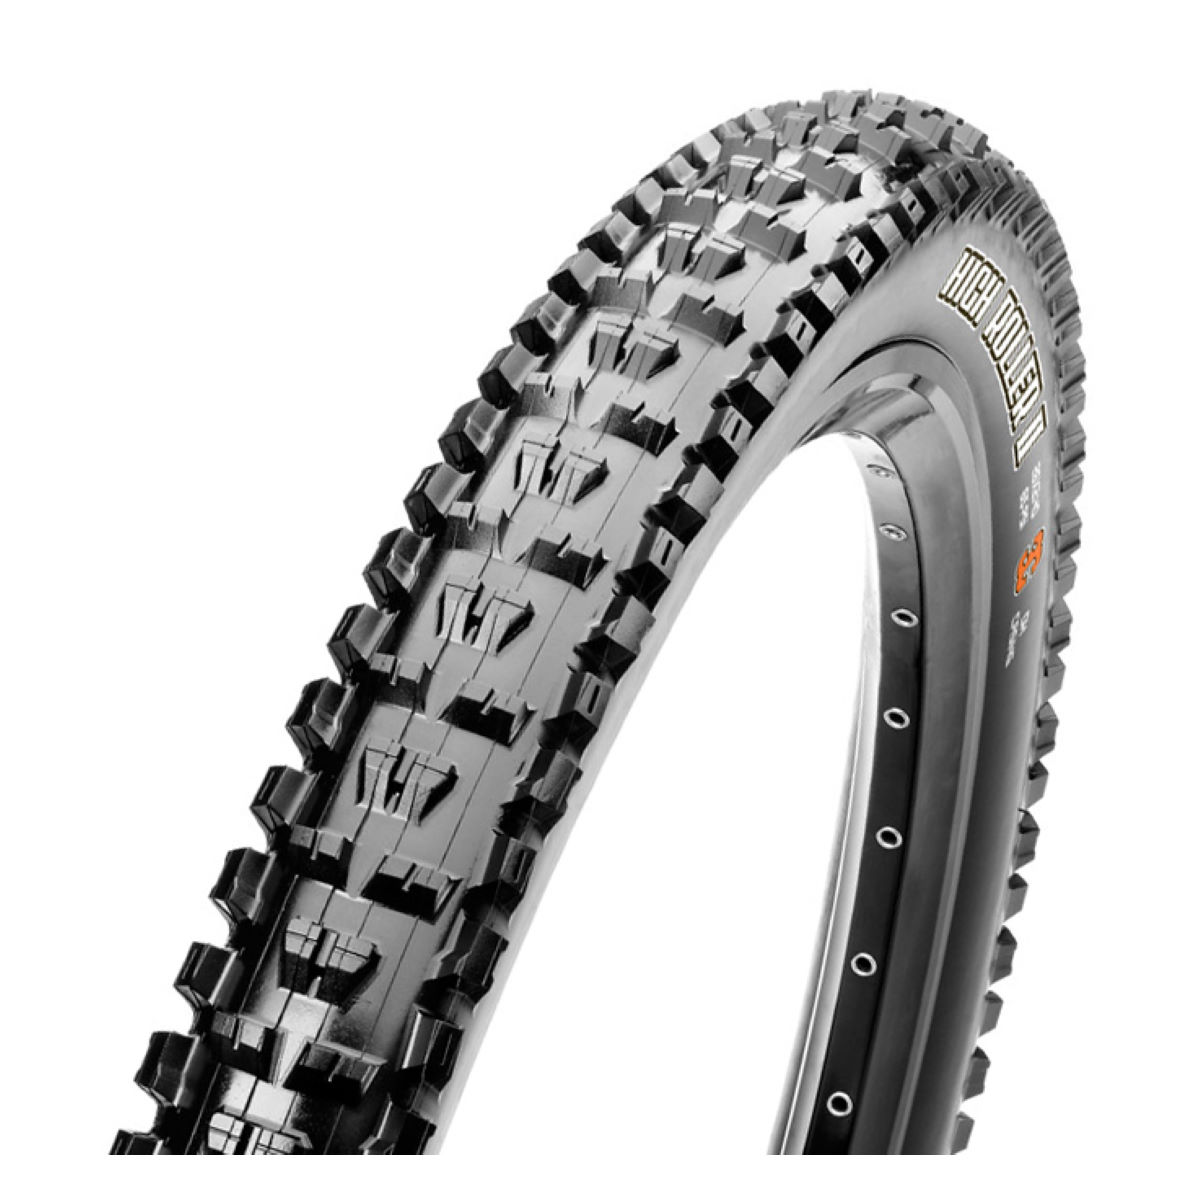 Maxxis Maxxis High Roller II 3C EXO TR 29er MTB Tyre   Tyres